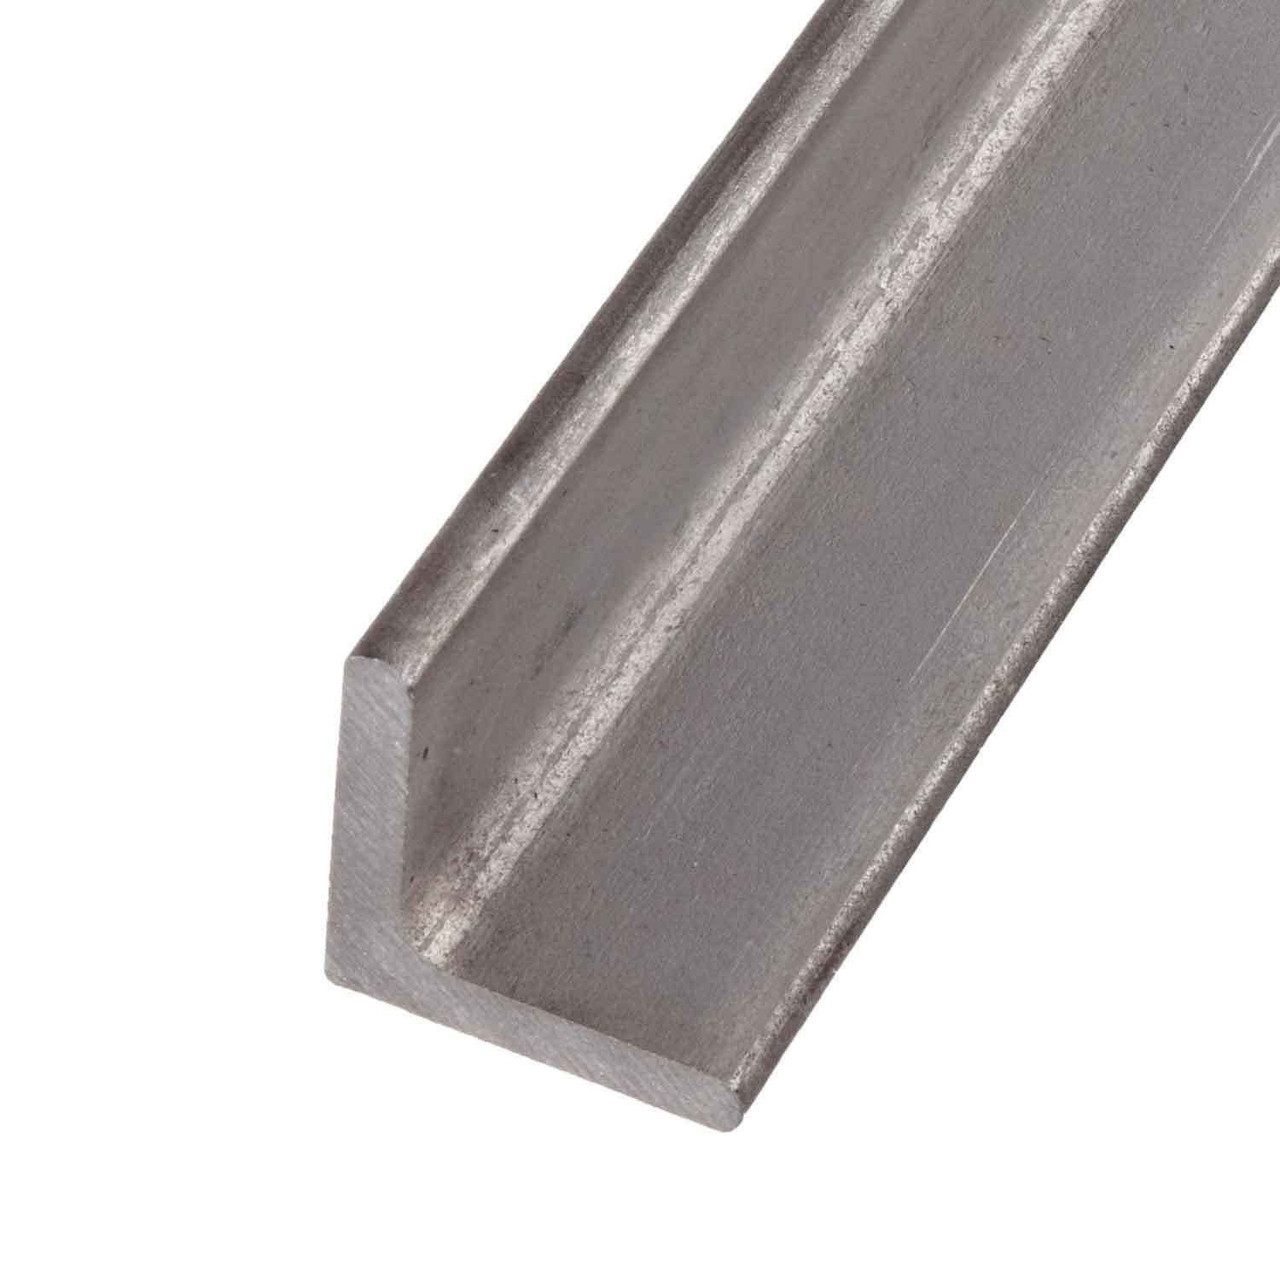 """304 Stainless Steel Angle, 2.5"""" x 2.5"""" x 0.250"""" x 72 inches"""